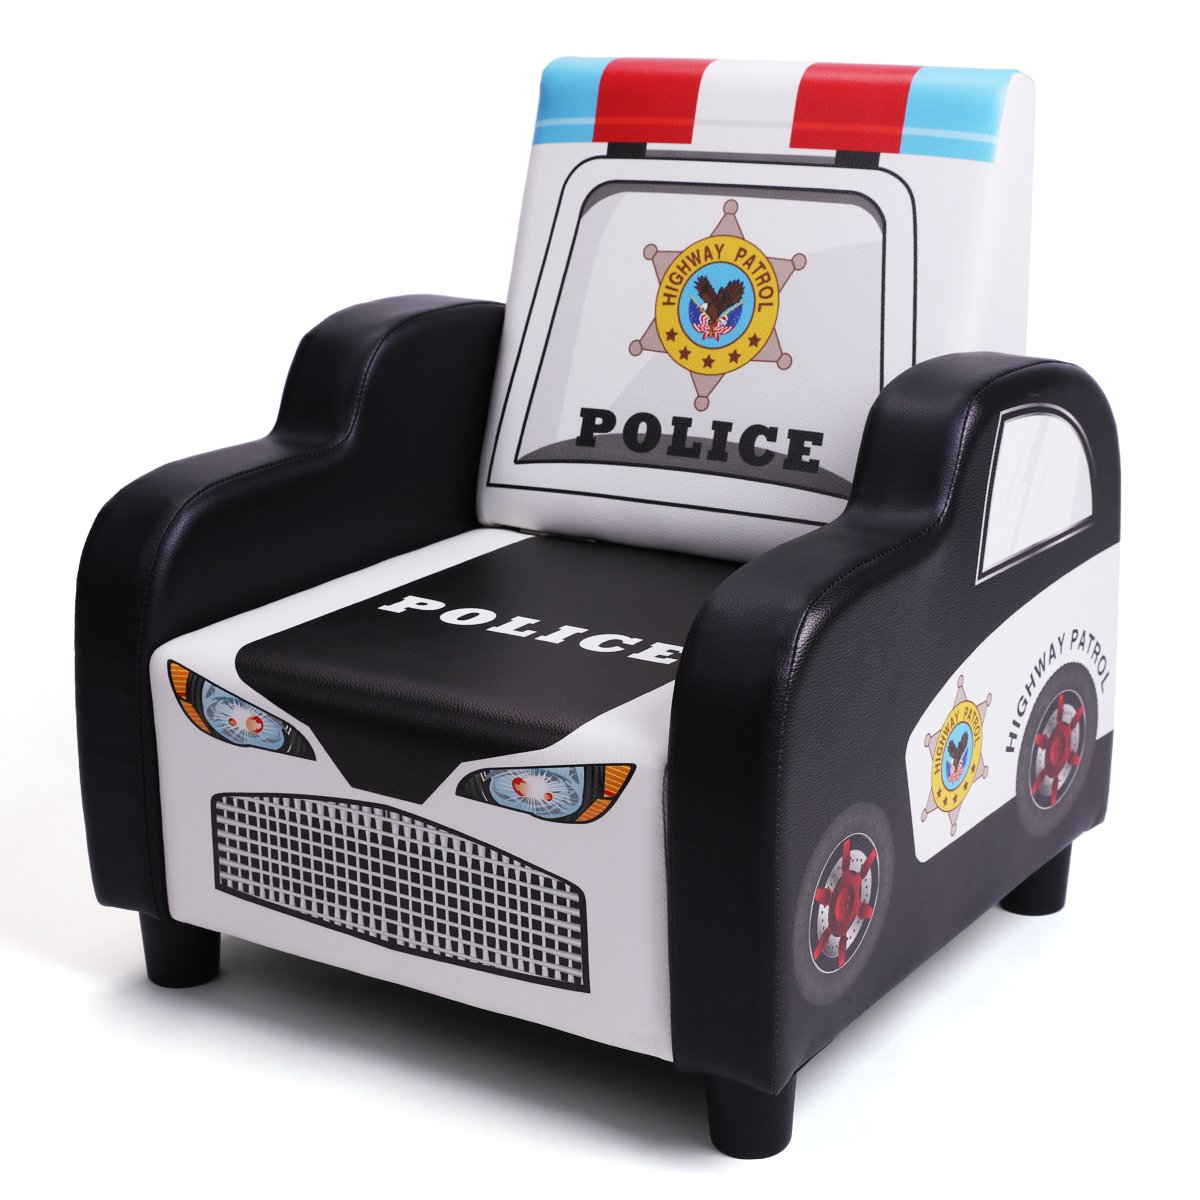 BOCCA Children's Arm Chair,16.53'' L x 16.53'' W x 18.5'' H Ideal for Children 3 to 7 Age, Black PVC Police Car Shape Kid's Sofa by BOCCA